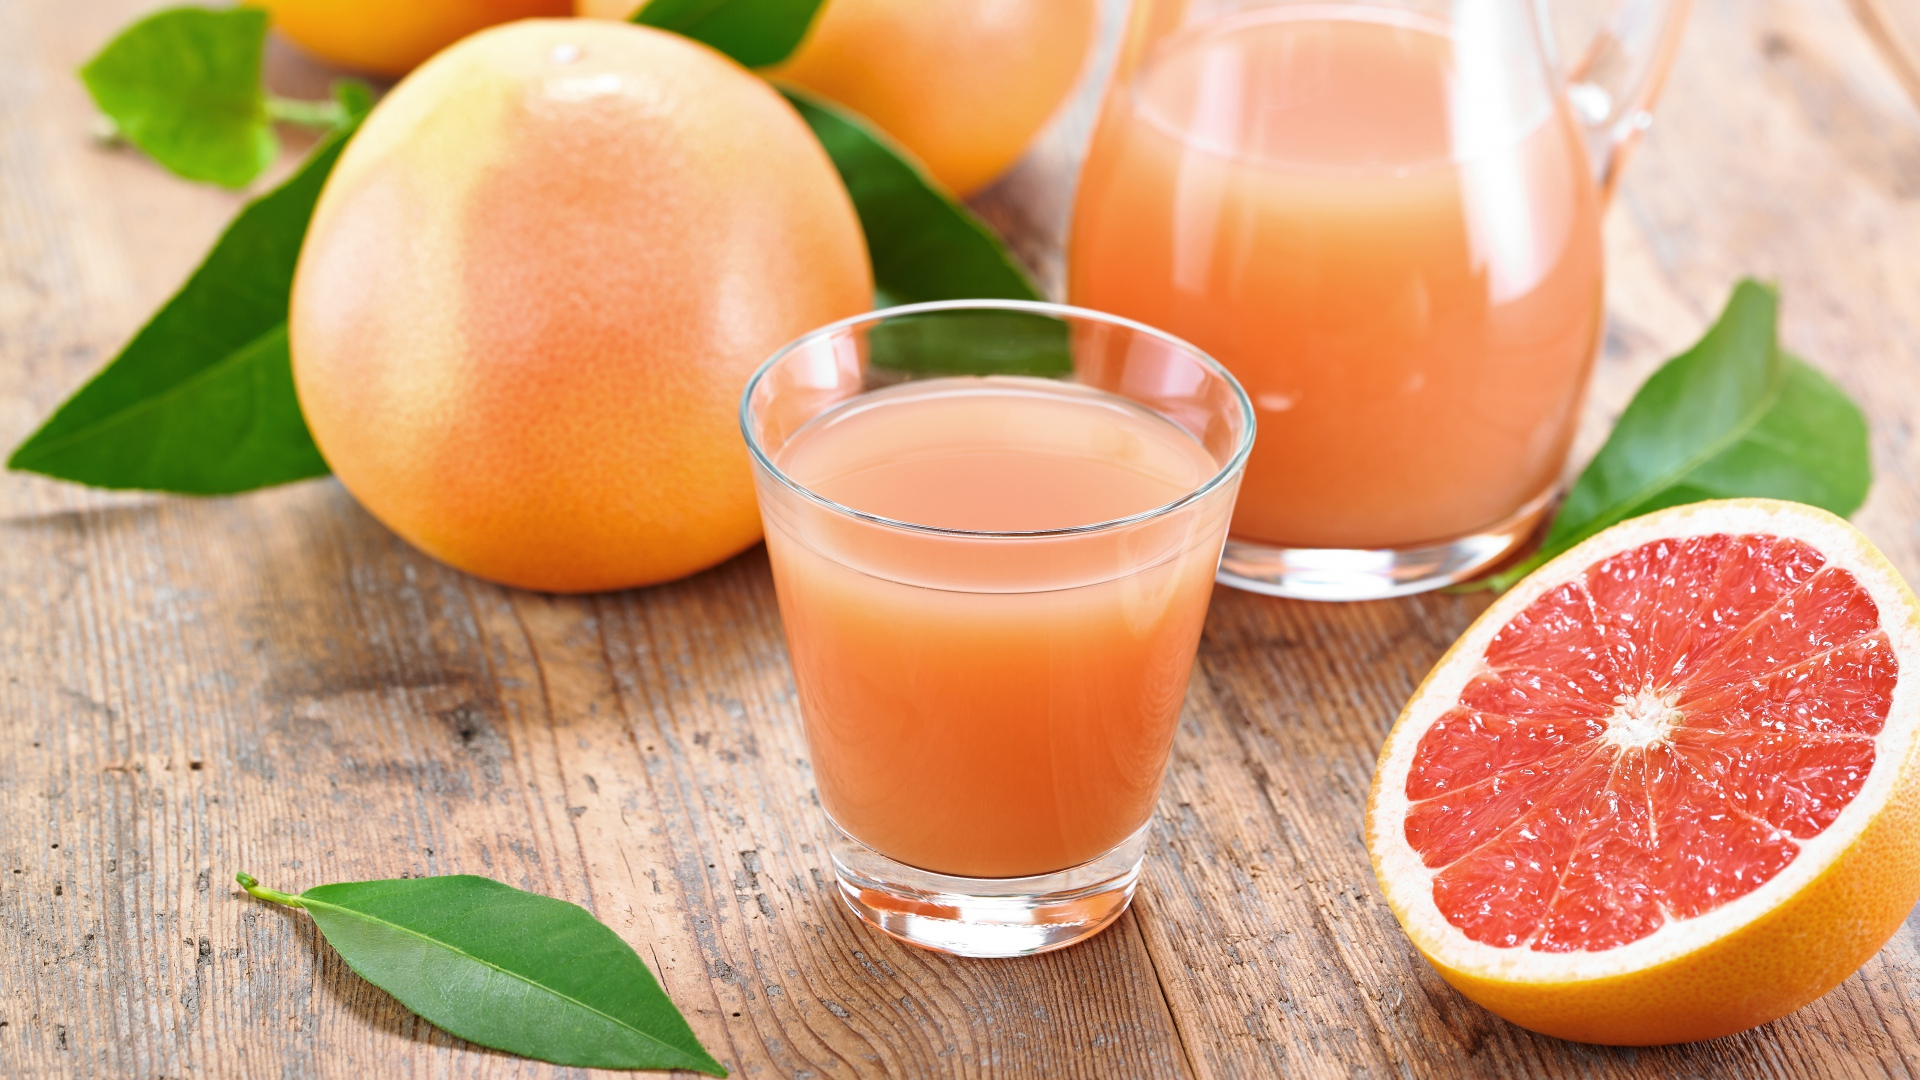 grapefruit_juice_fruit_citrus_107703_1920x1080